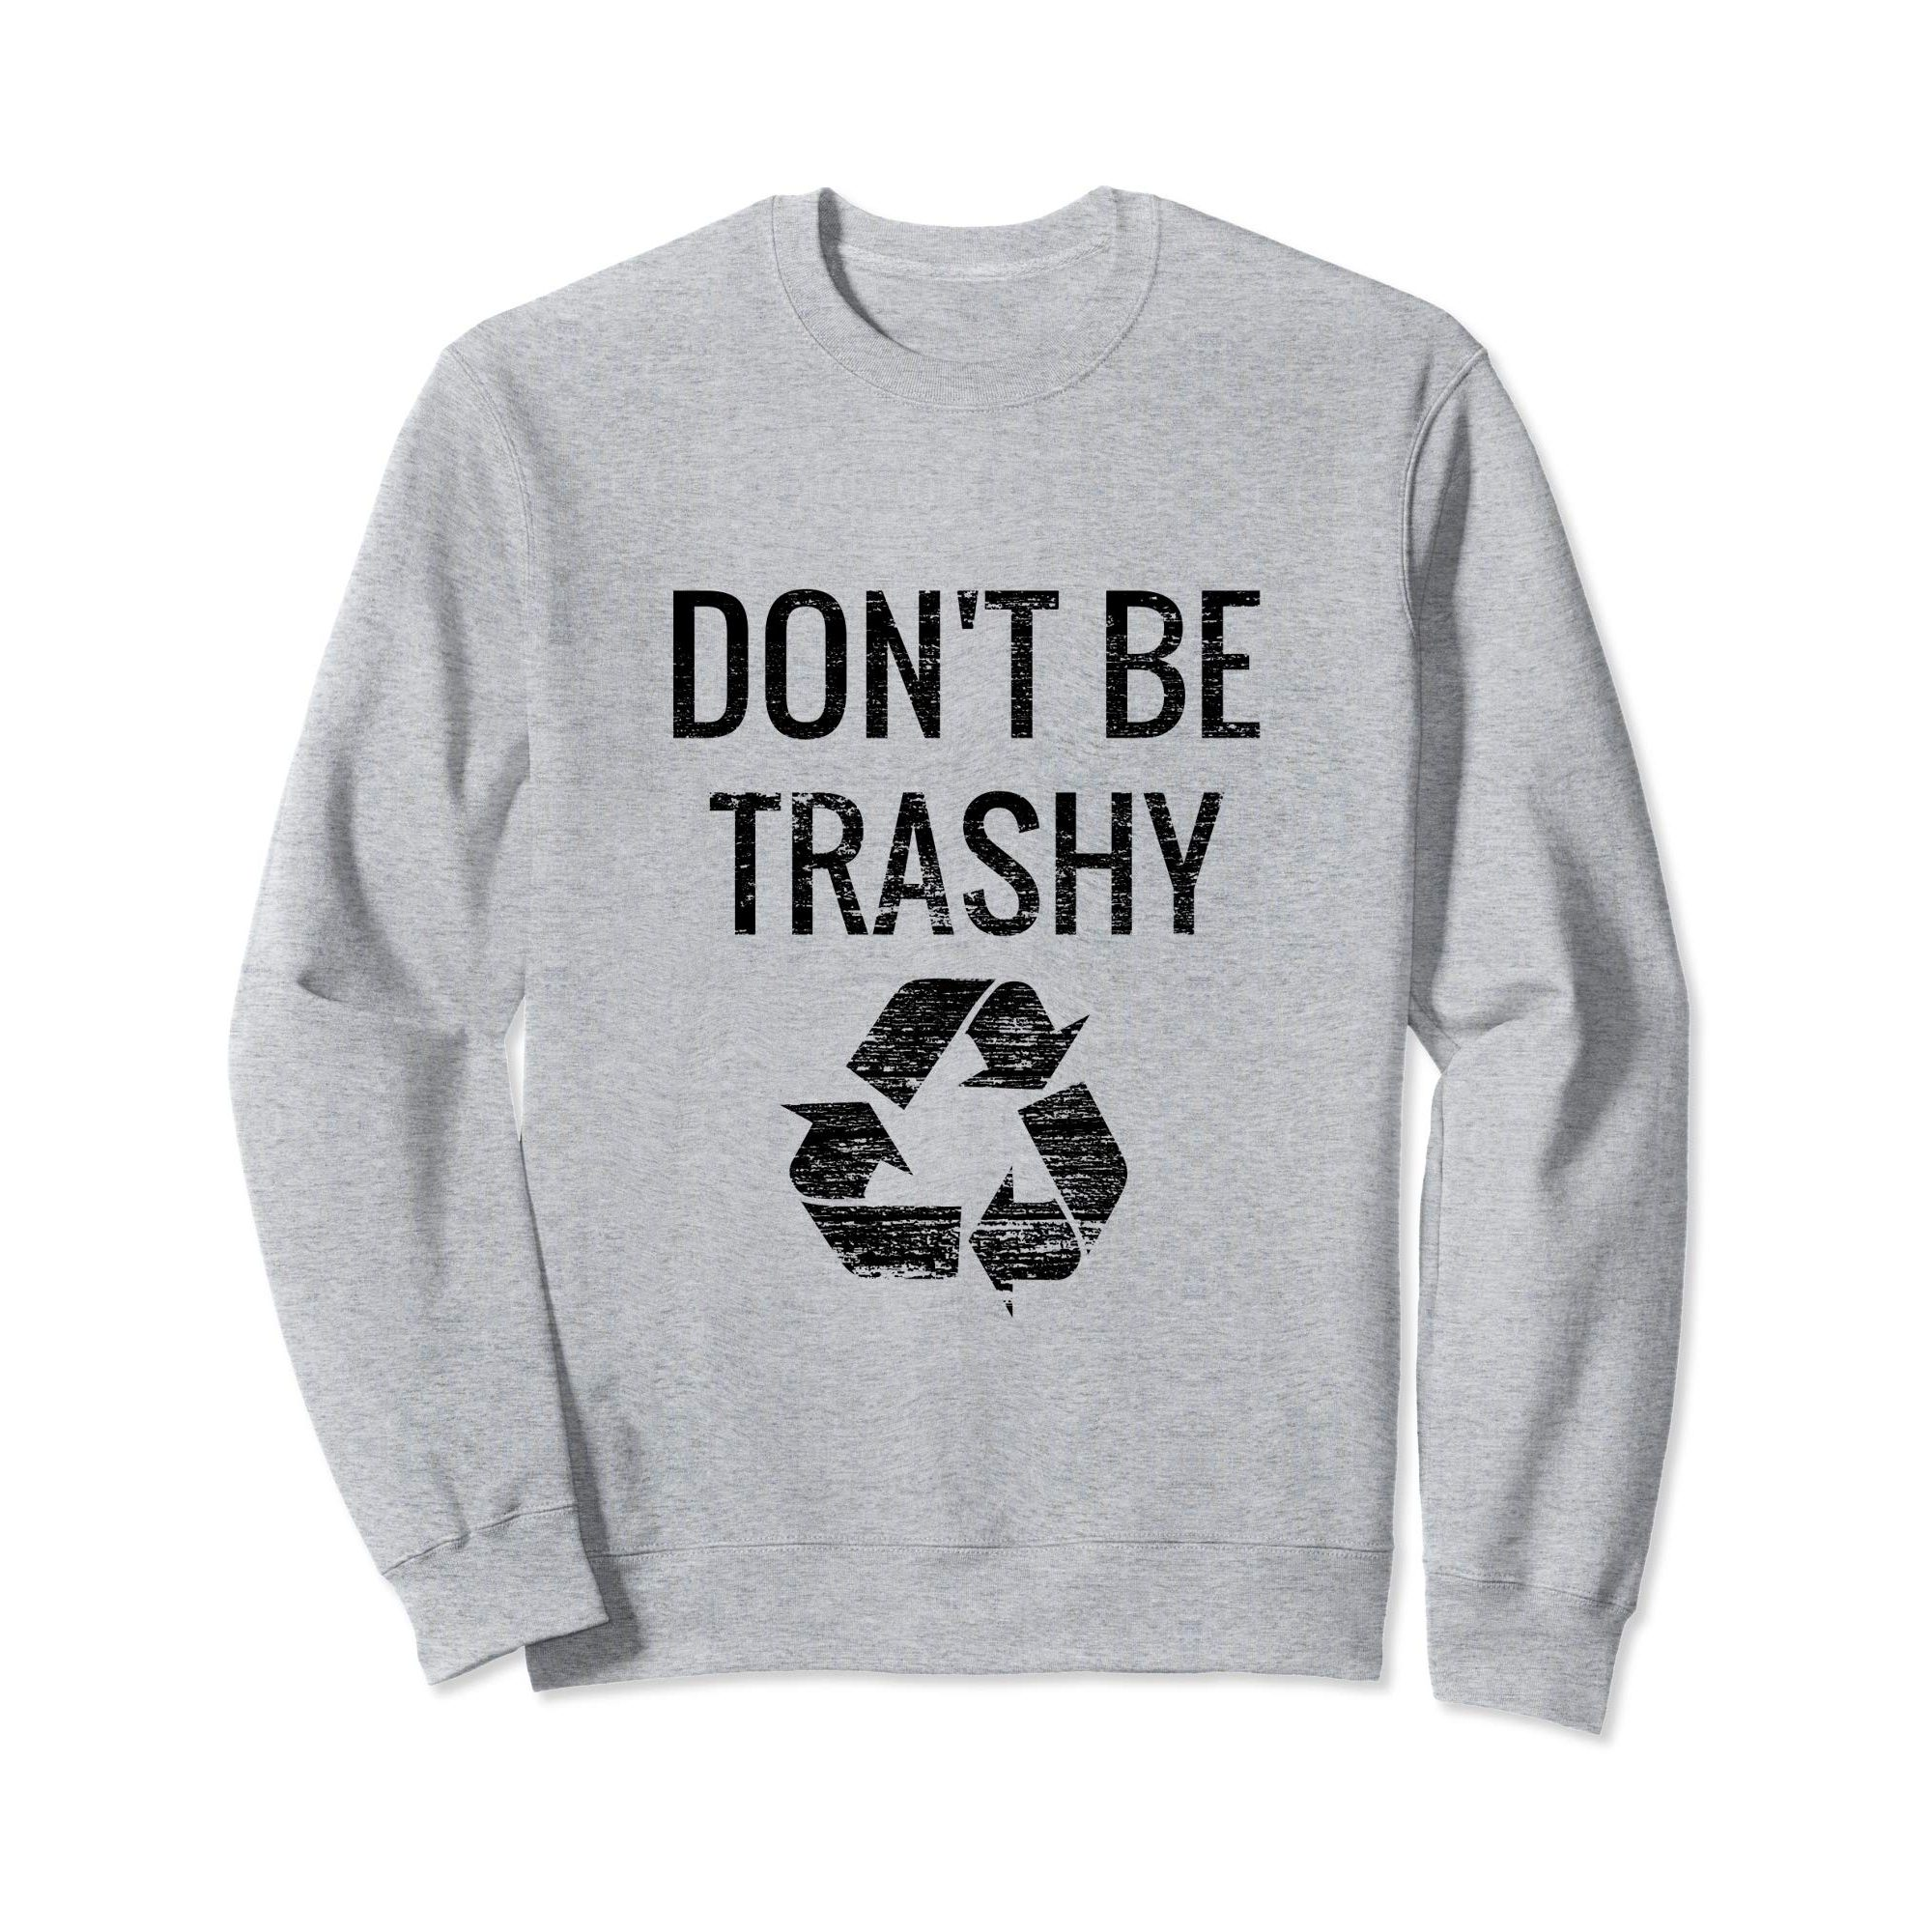 """SWEATSHIRT WITH """"DON'T BE TRASHY"""" RECYCLE GRAPHIC"""